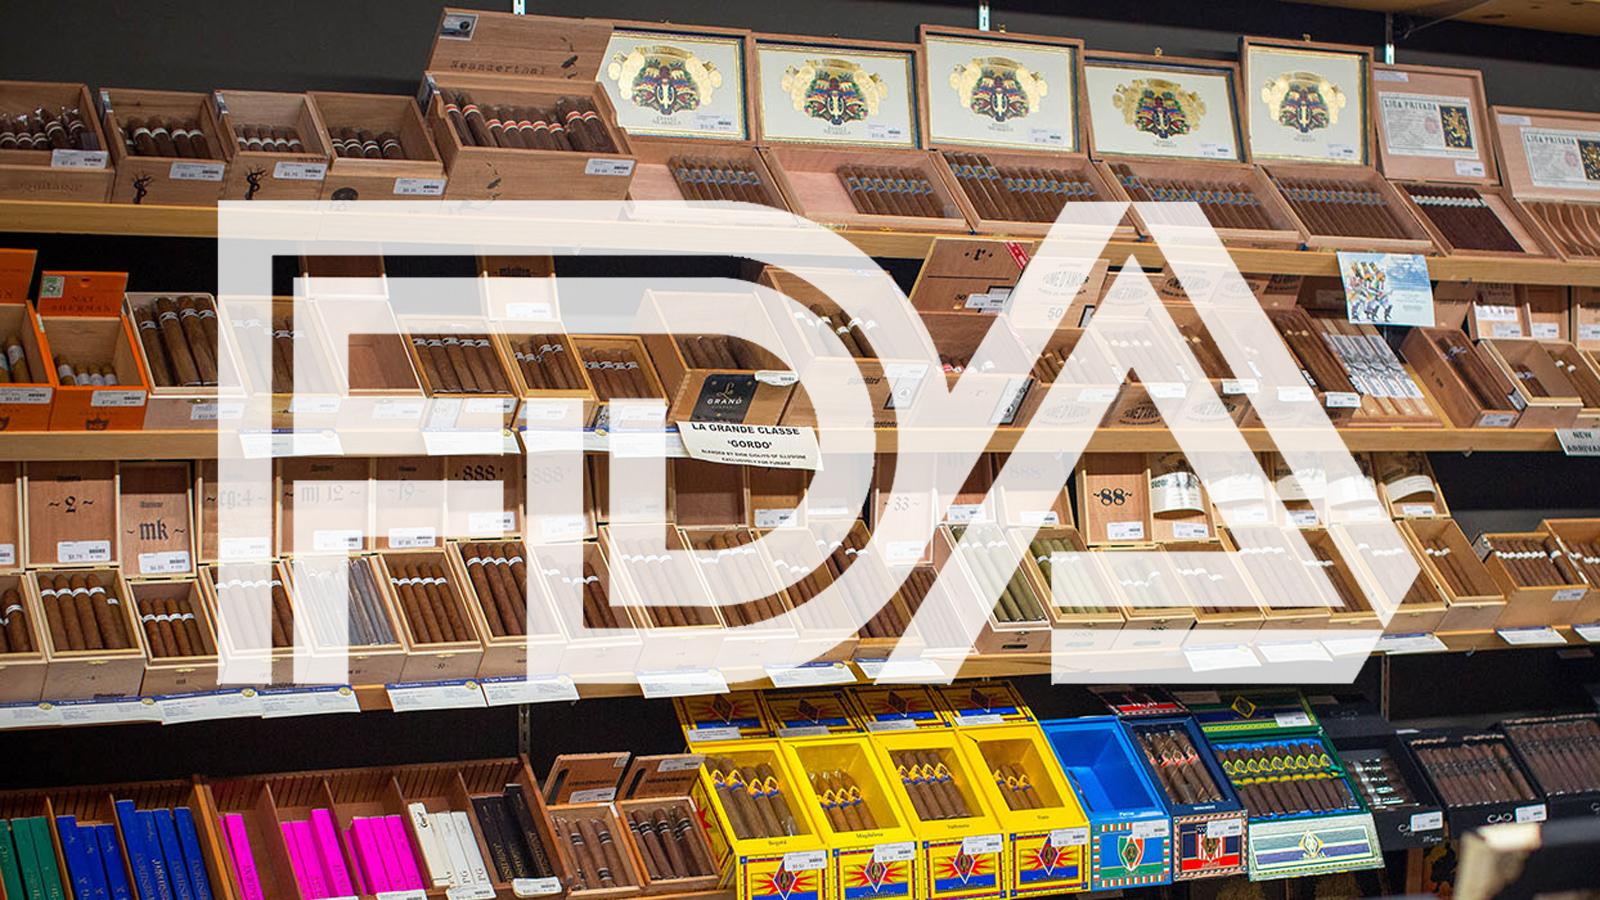 FDA Allowing Free Samples In Certain Cases